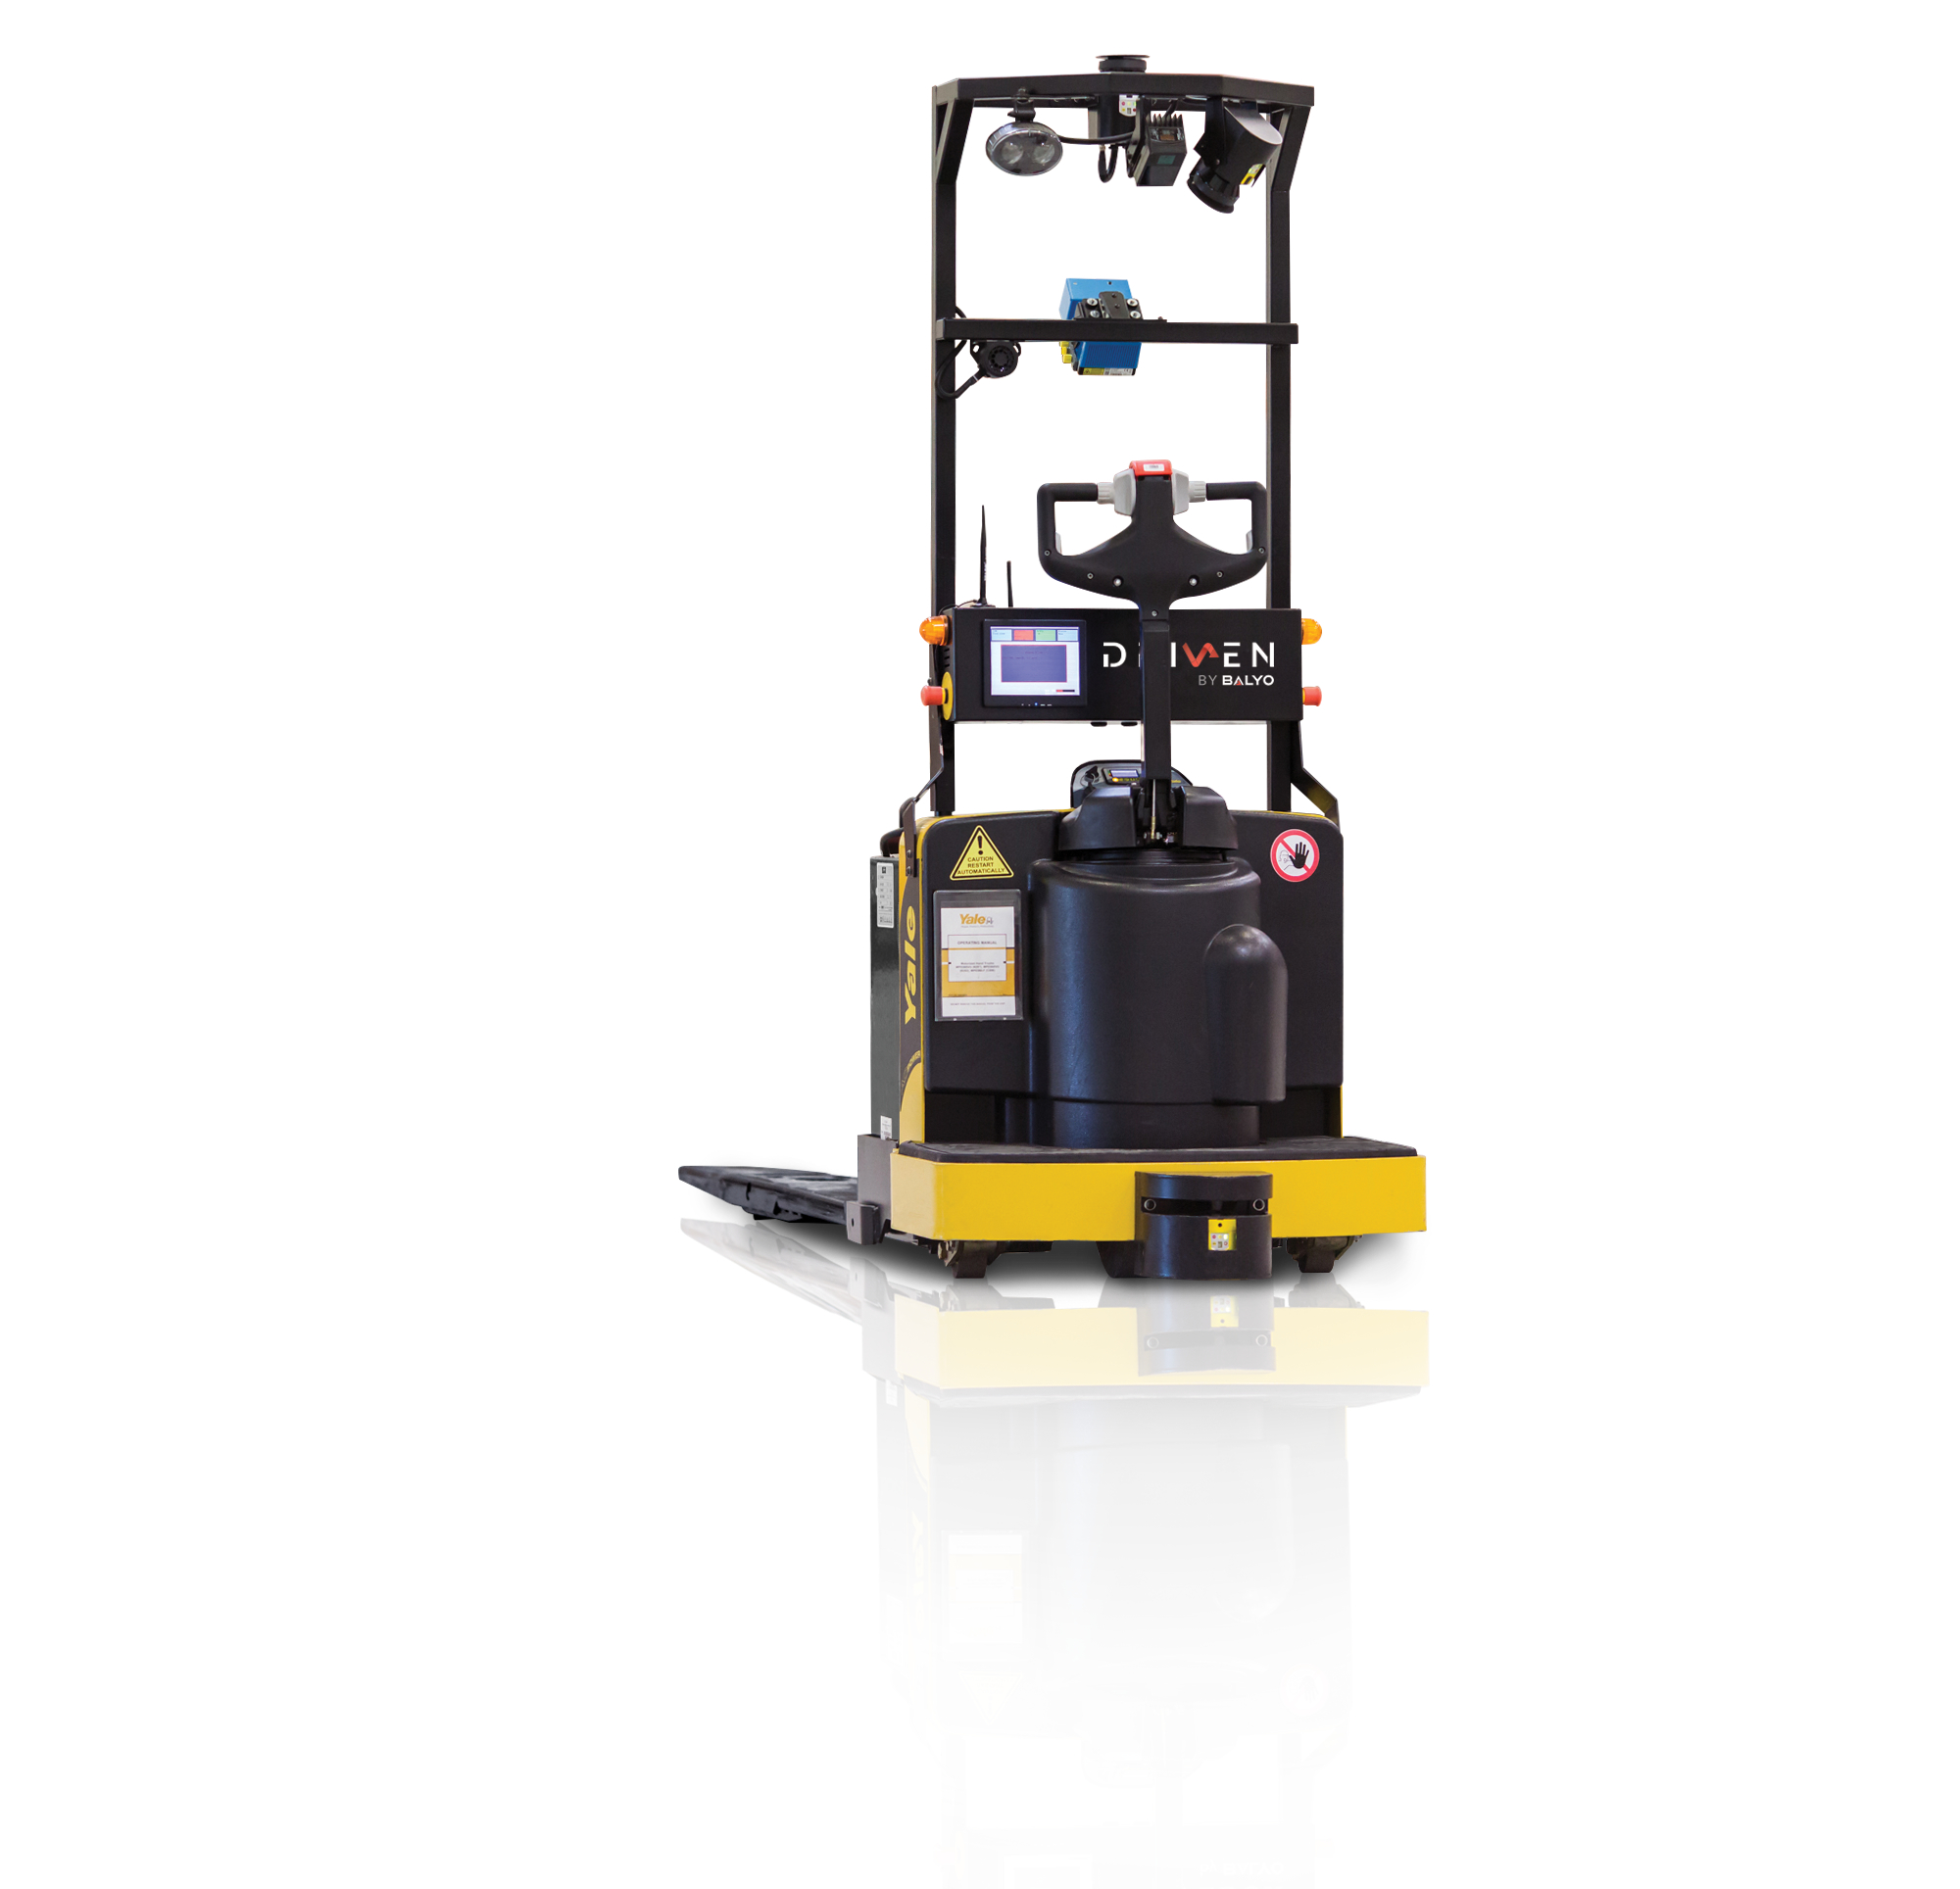 Find A Distributor Blog Yale Debuts Robotic Lift Truck Technology at ...